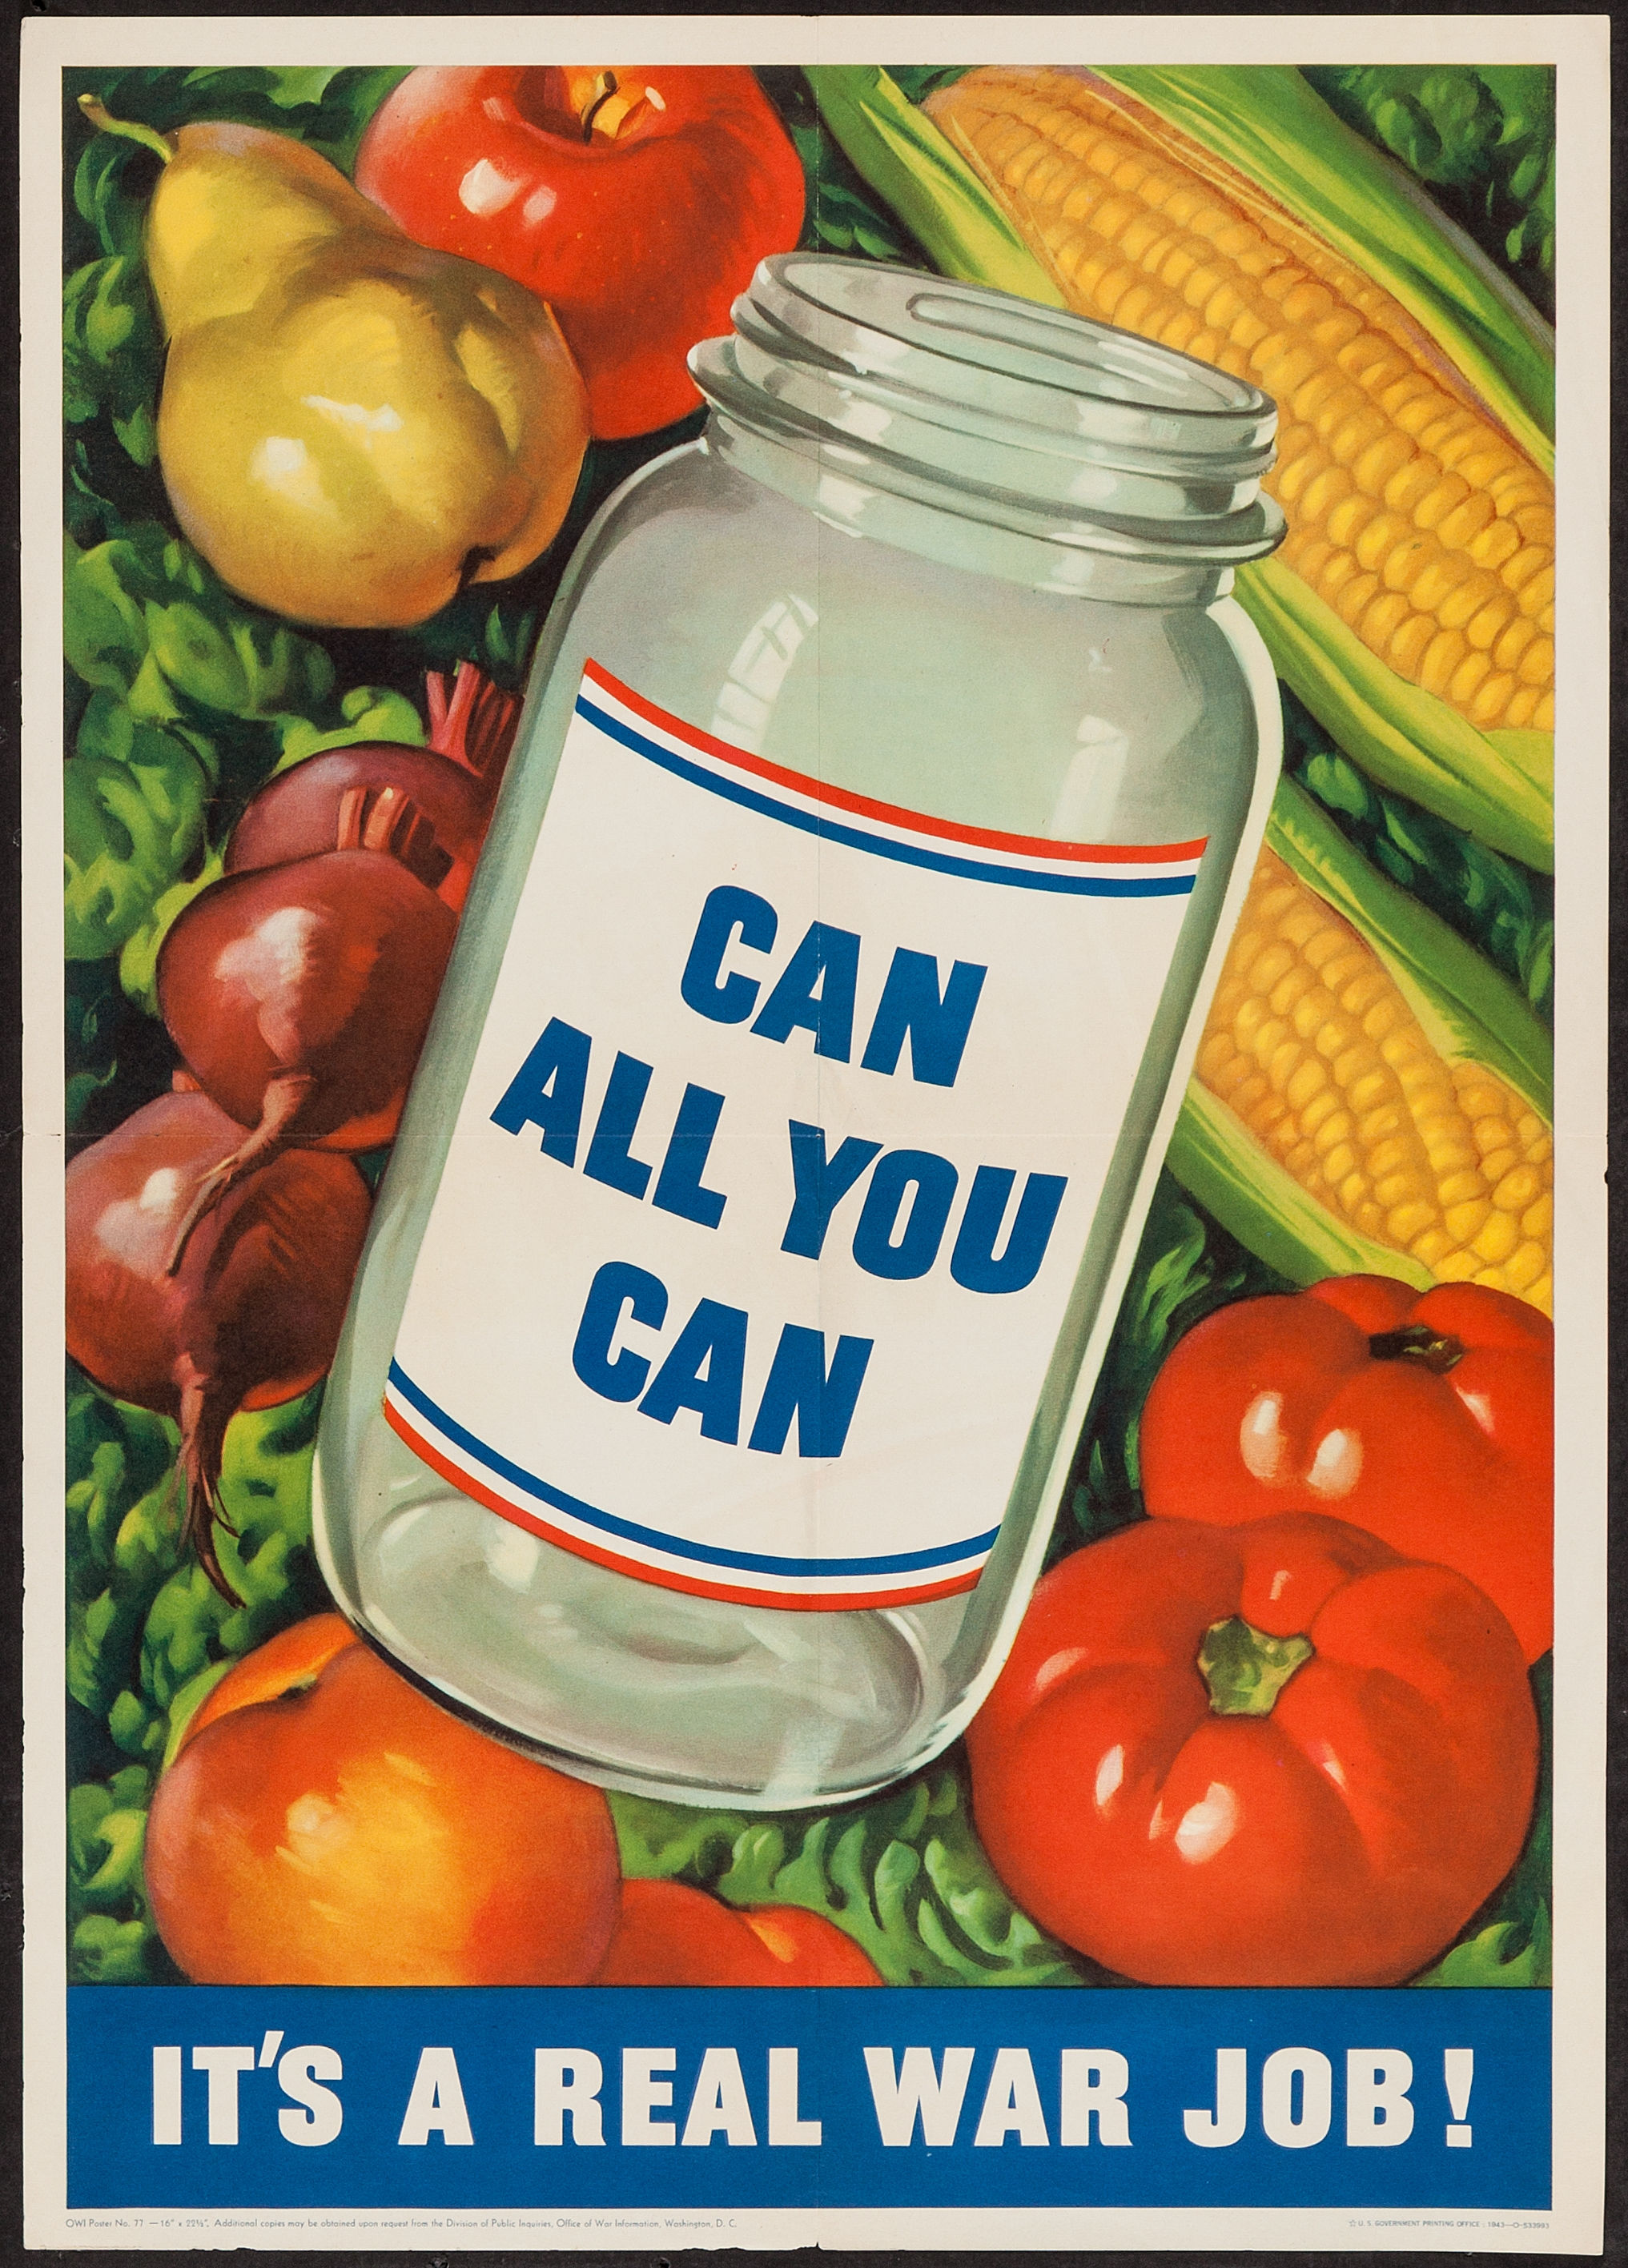 Pictured is a US 1943 war propaganda poster with the words Can All You Can.